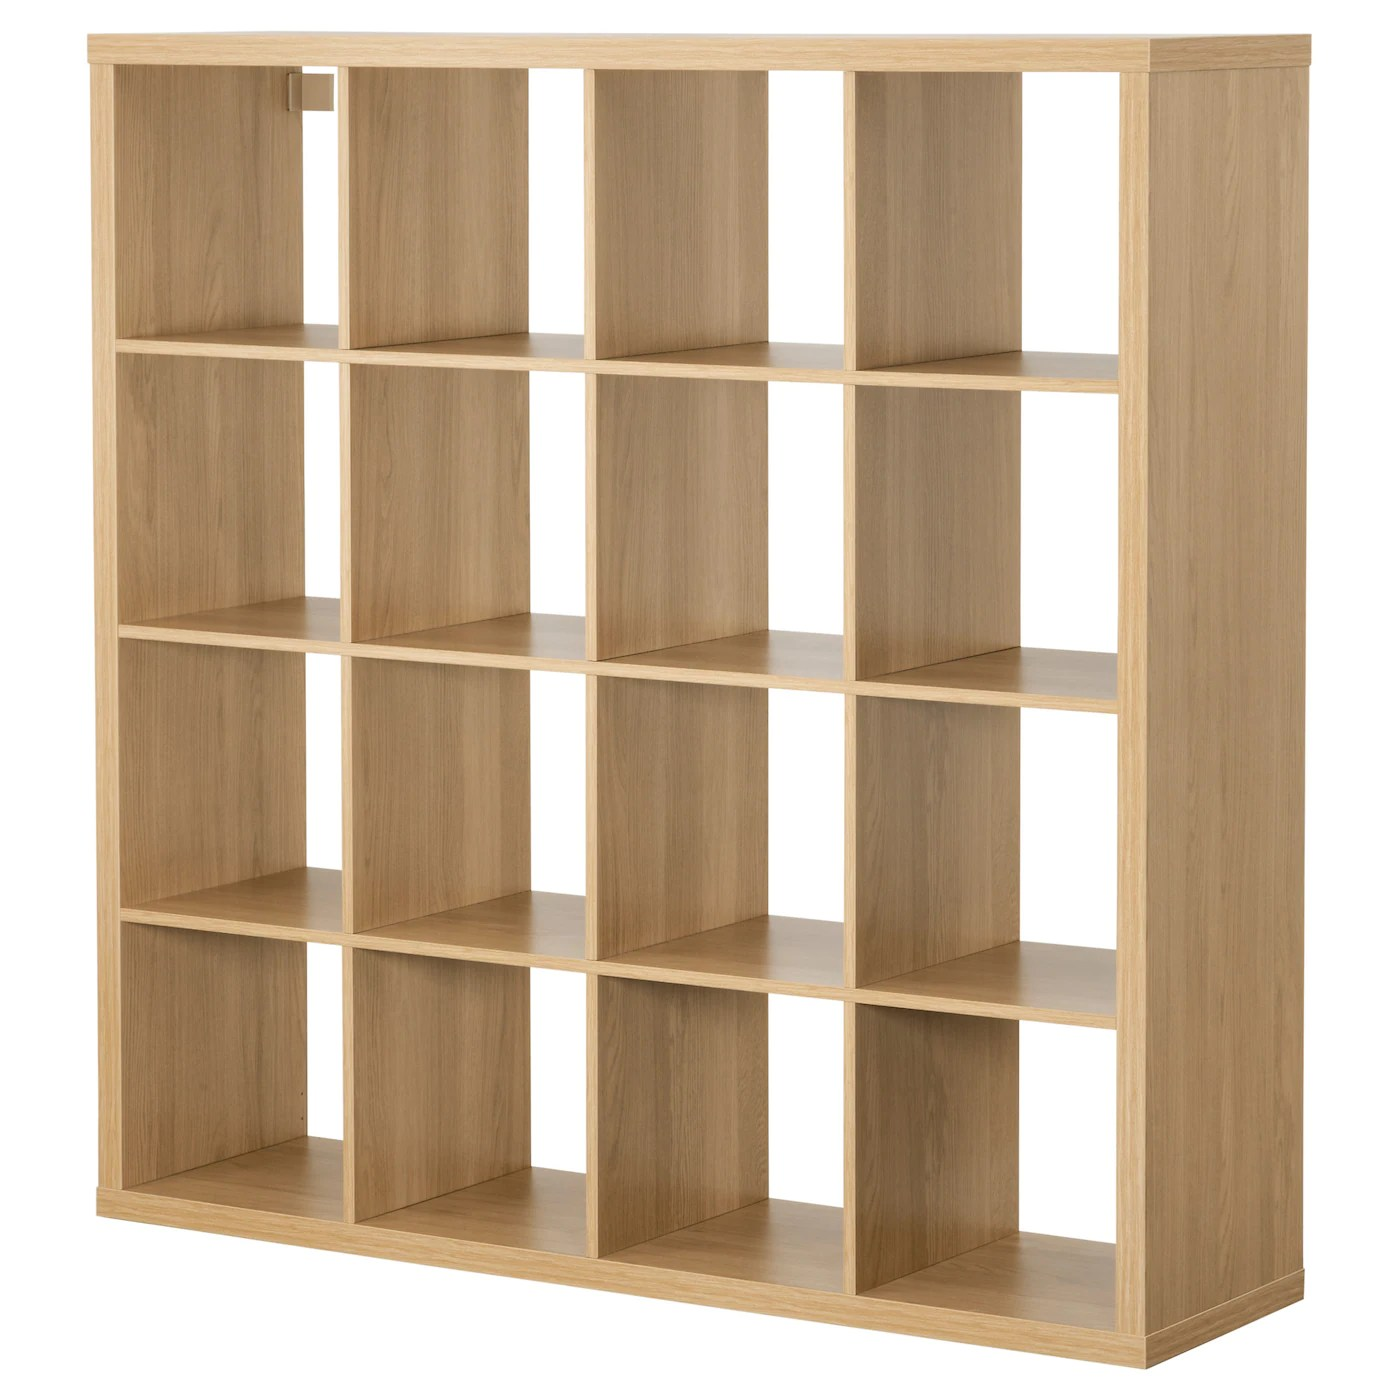 Ikea Kallax Cd Storage Kallax Shelving Unit Oak Effect